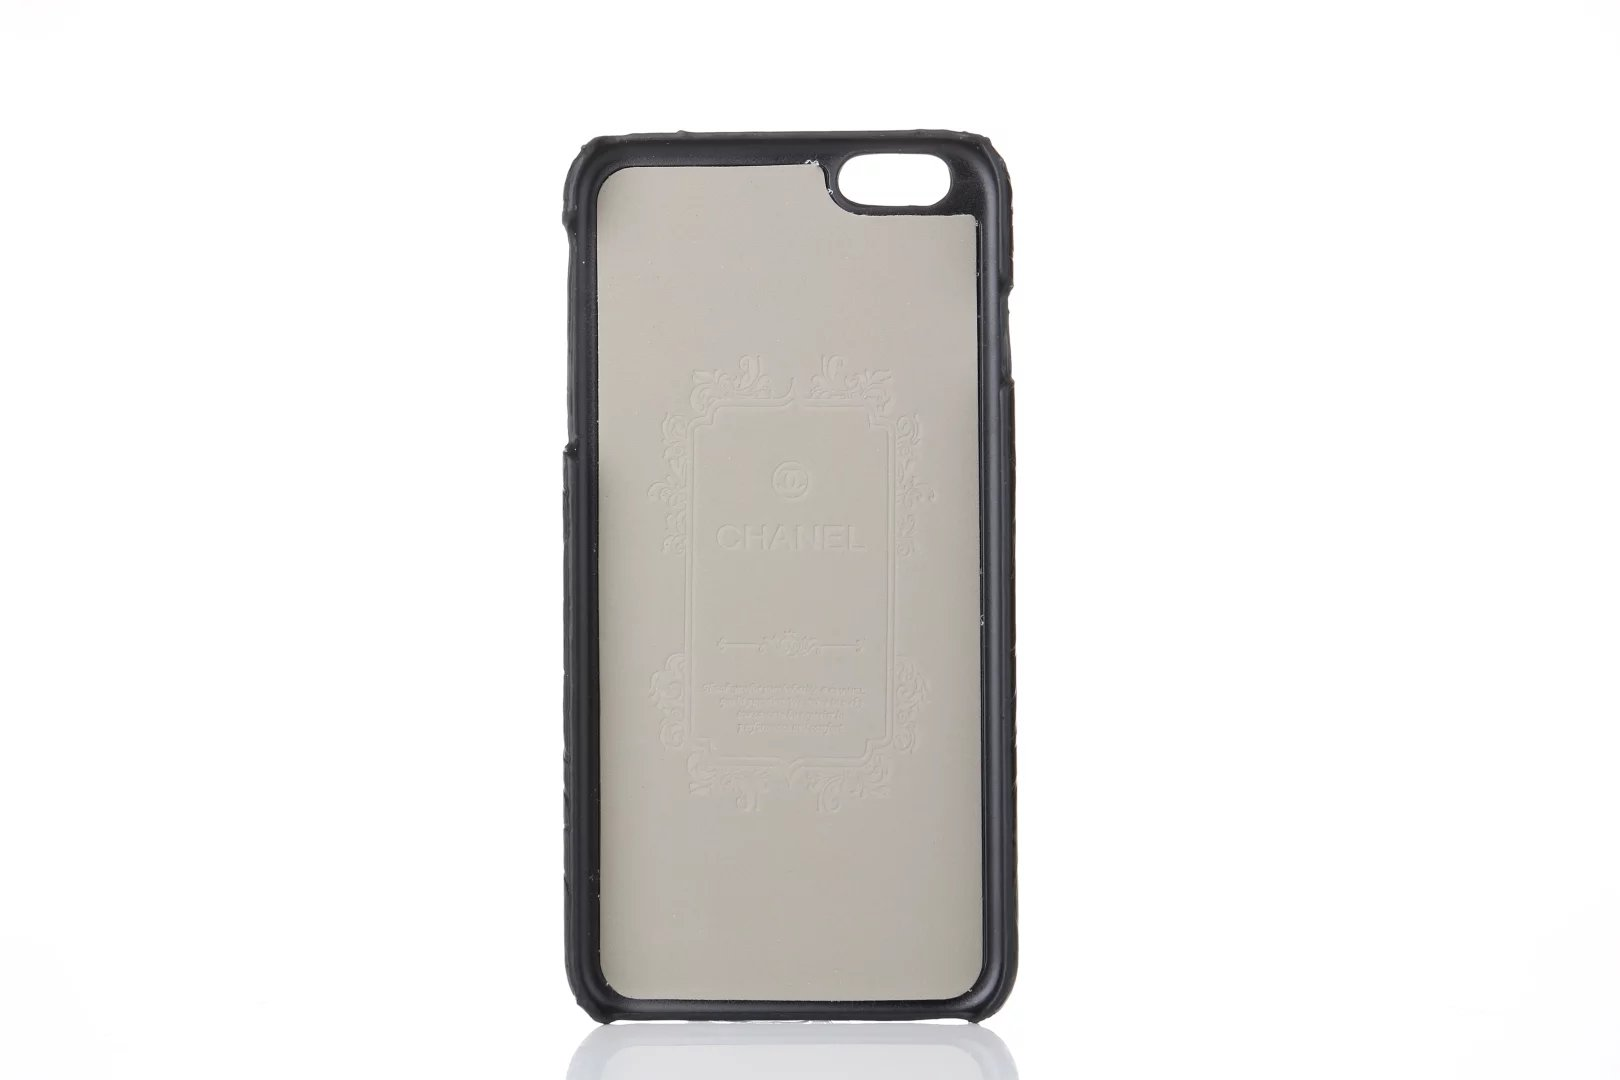 top rated iphone 7 Plus cases cheap iphone 7 Plus covers fashion iphone7 Plus case where to get iphone 7 Plus cases iphone 7 Plus covers buy online iphone 7 Plus cse buy designer iphone accessories best iphone 7 Plus protective case